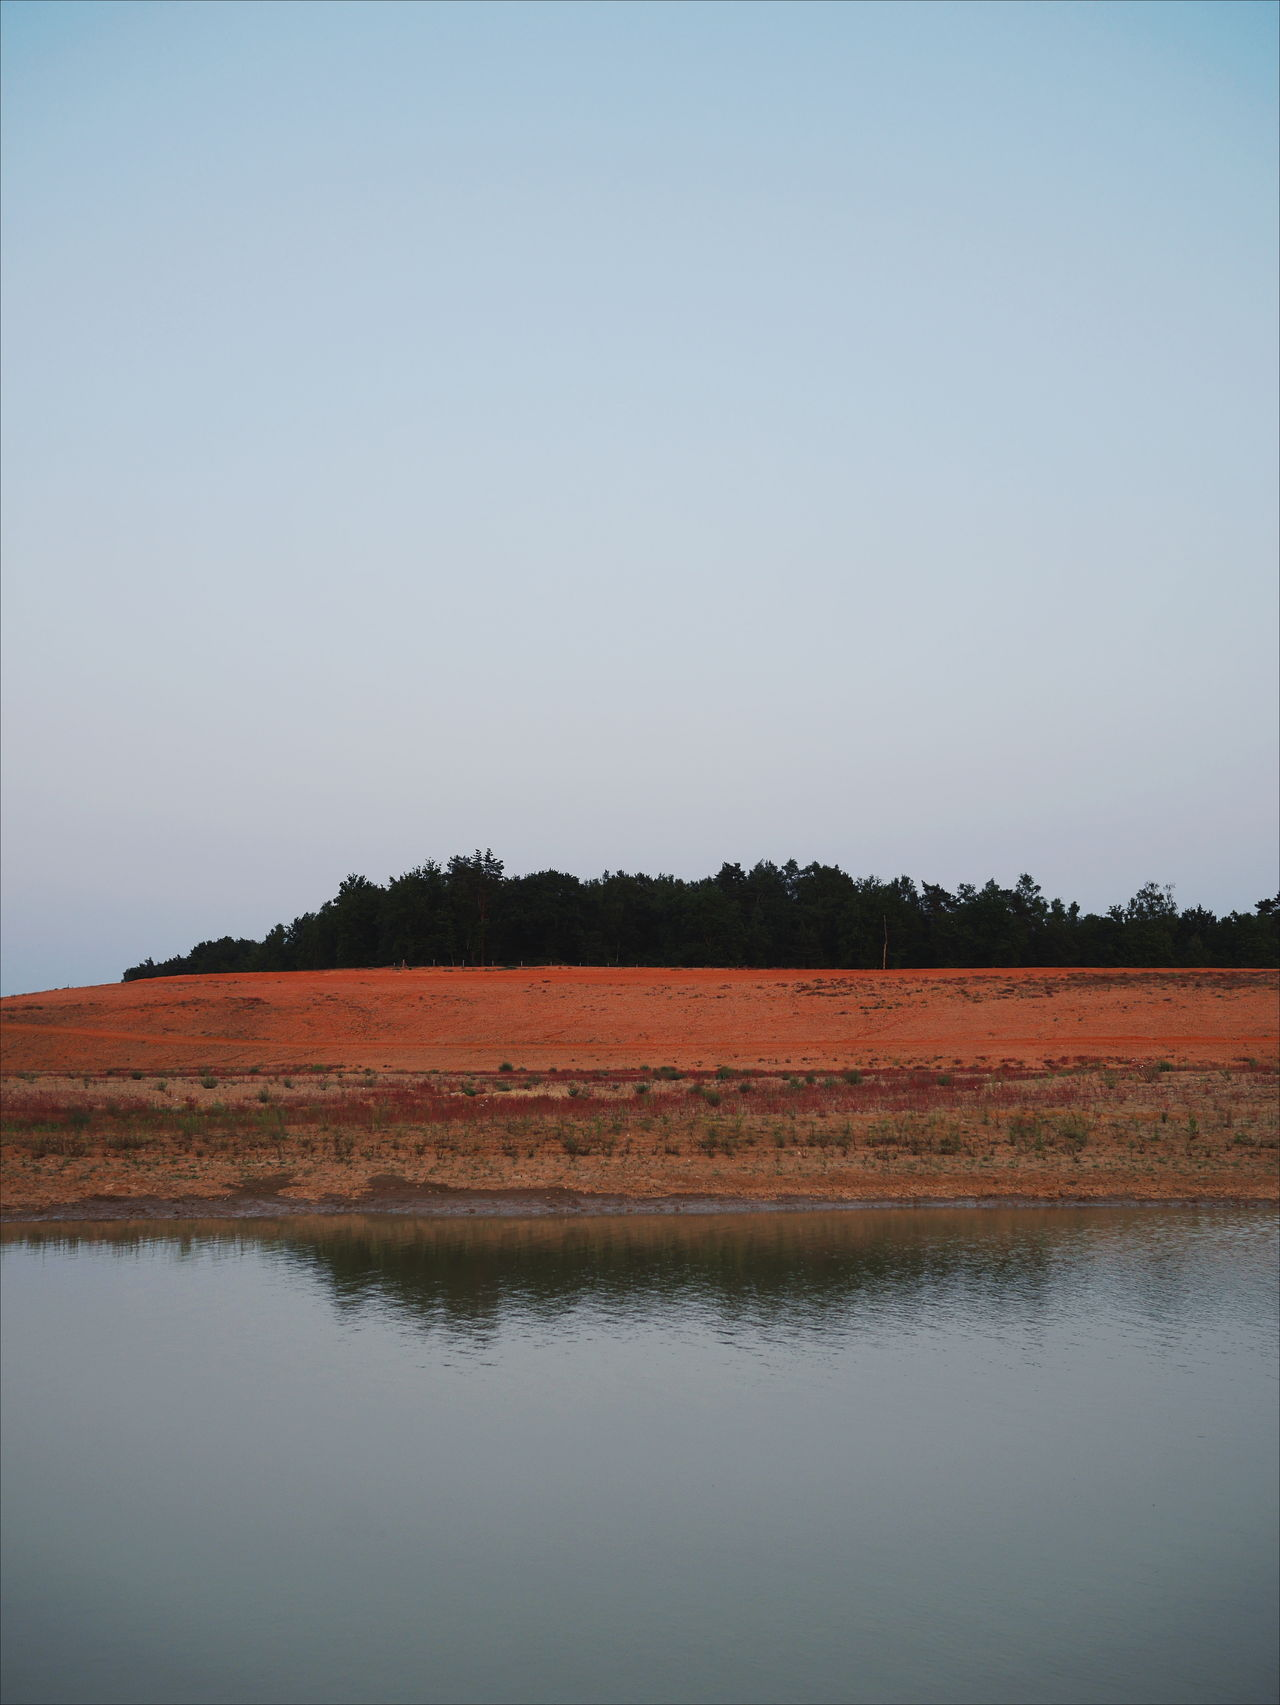 Reflection Landscape No People Nature Beauty In Nature Rural Scene Water Scenics Outdoors Sky Day